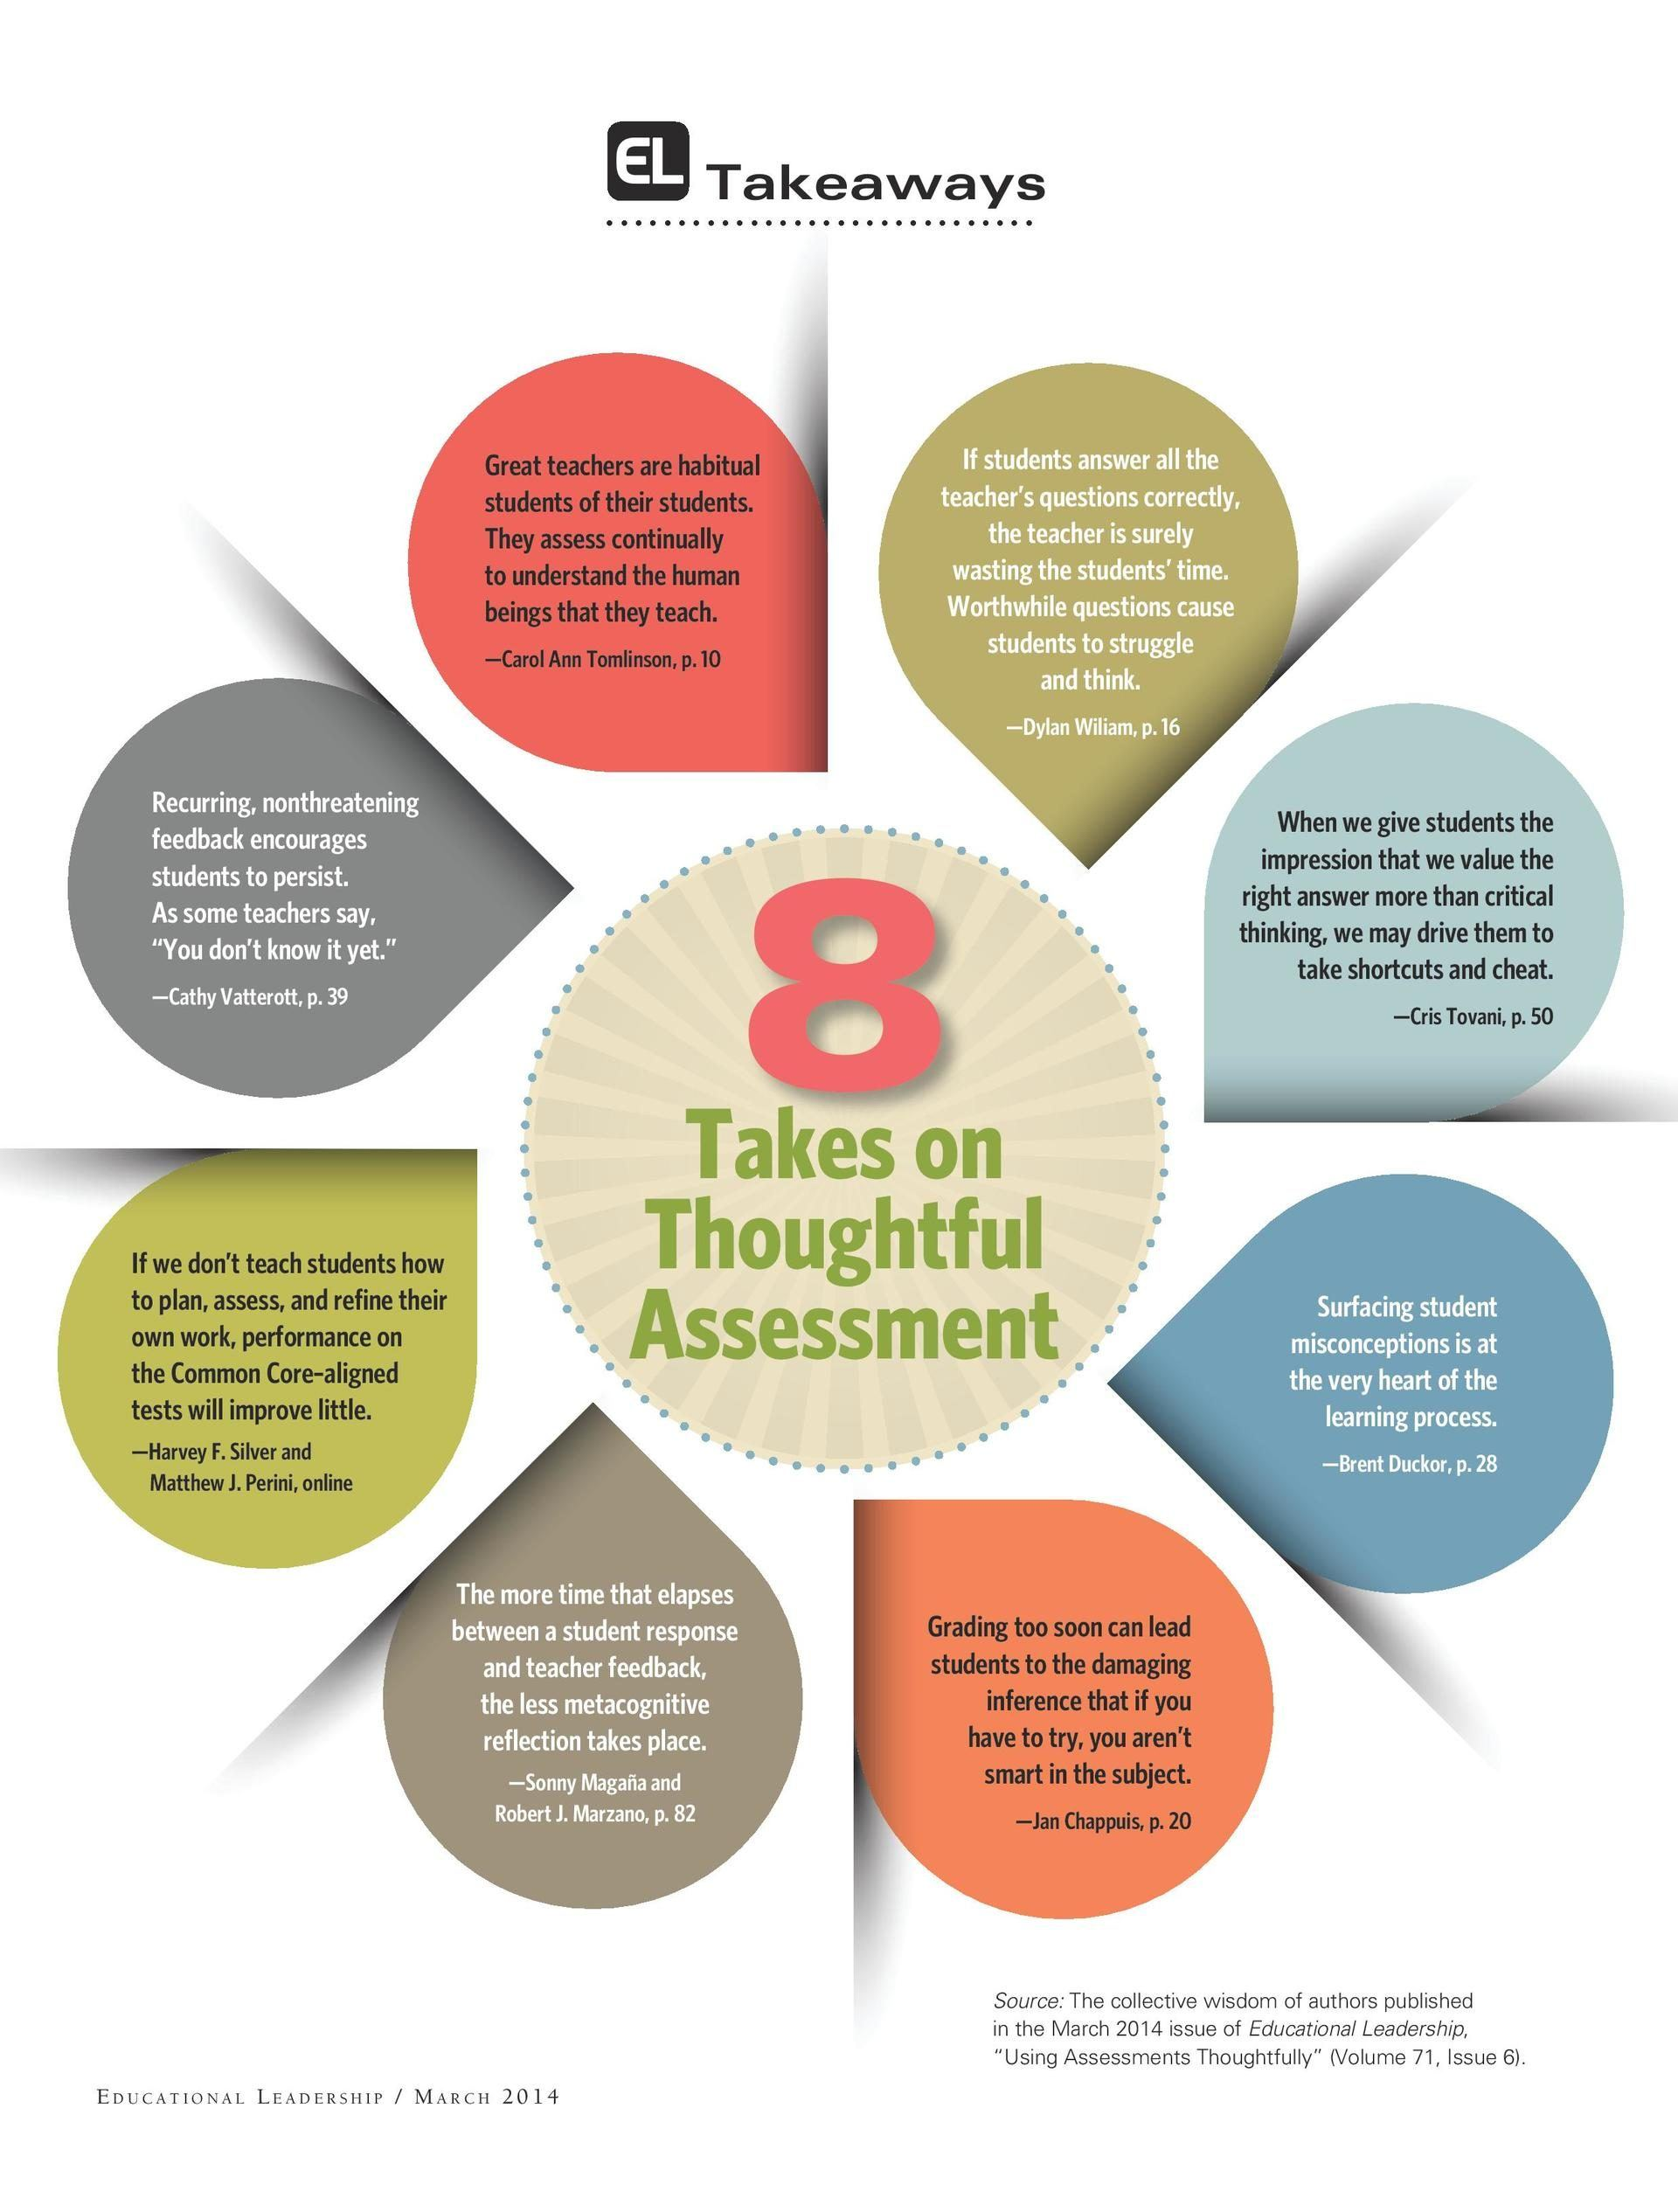 8 Takeaways on Thoughtful Assessment Infographic